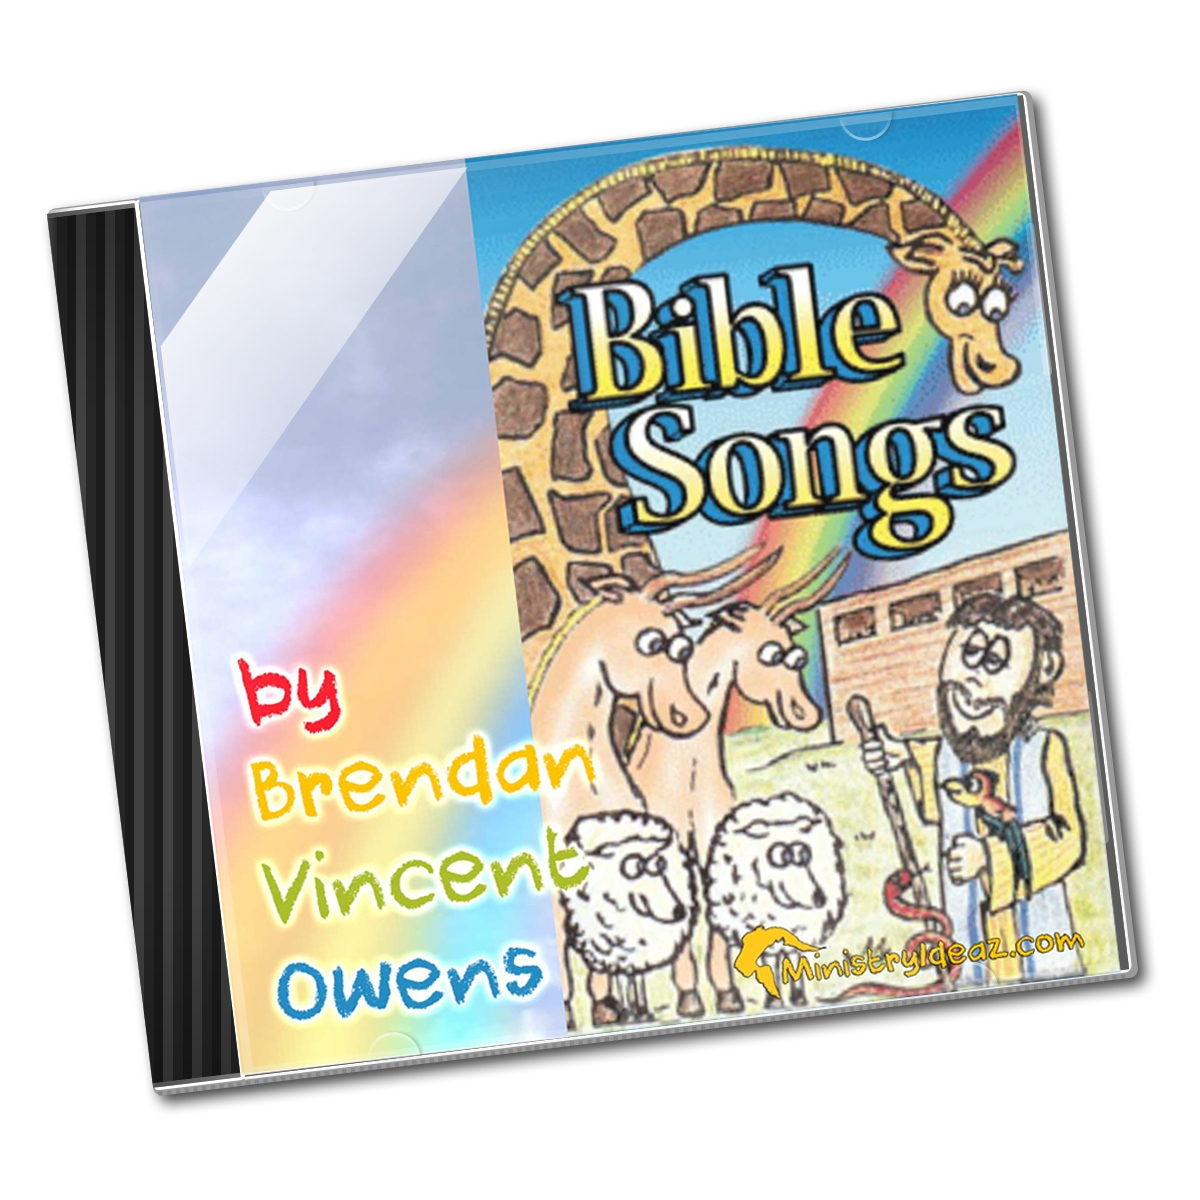 Jehovah witnesses new songs download